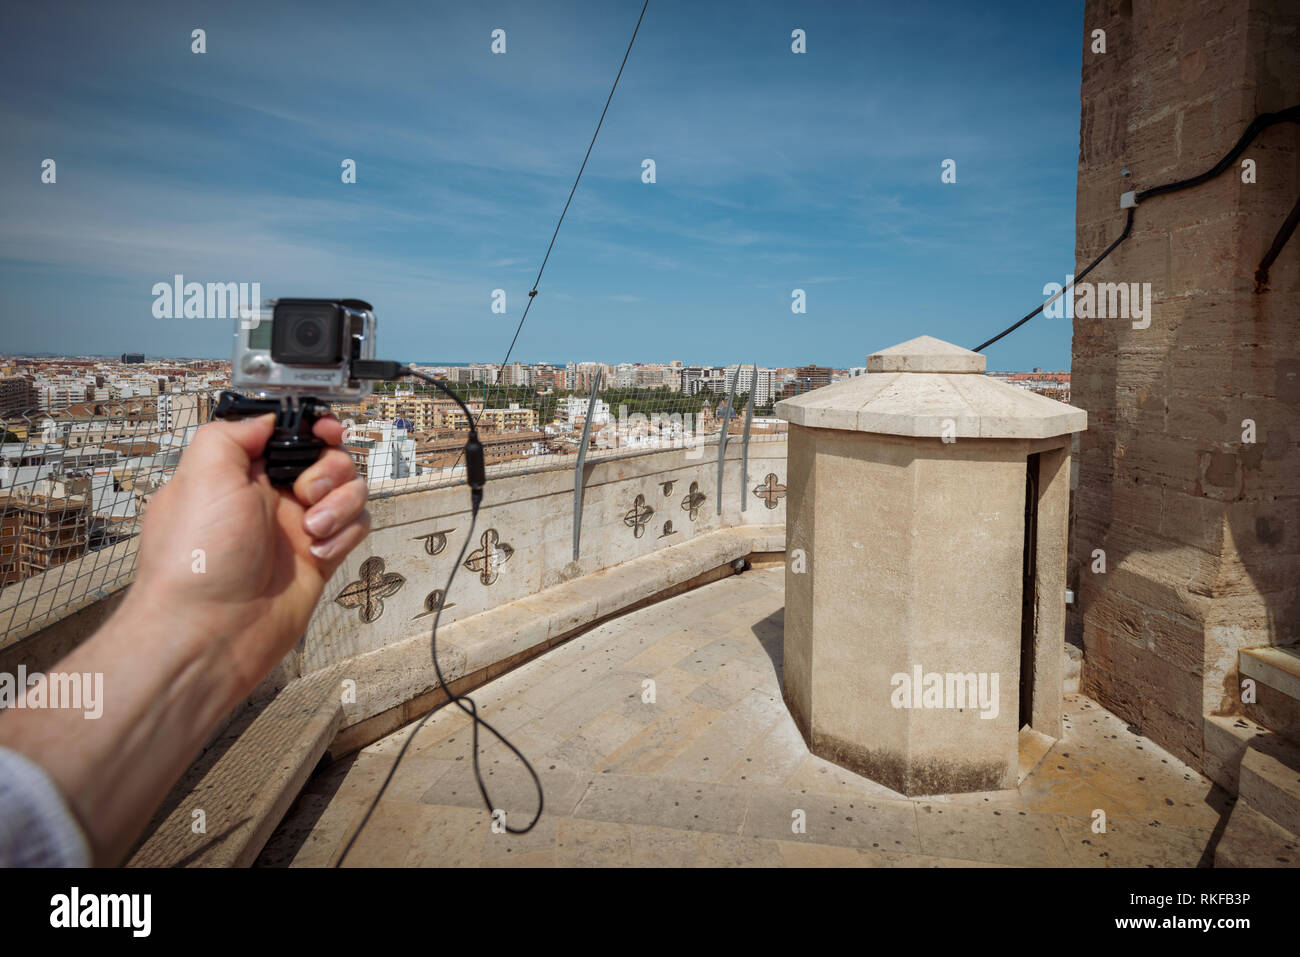 A man holds a GoPro camera in front of the view across the city at the top of the El Miguelete, the bell tower of the Valencia Cathedral, in Valencia, Stock Photo